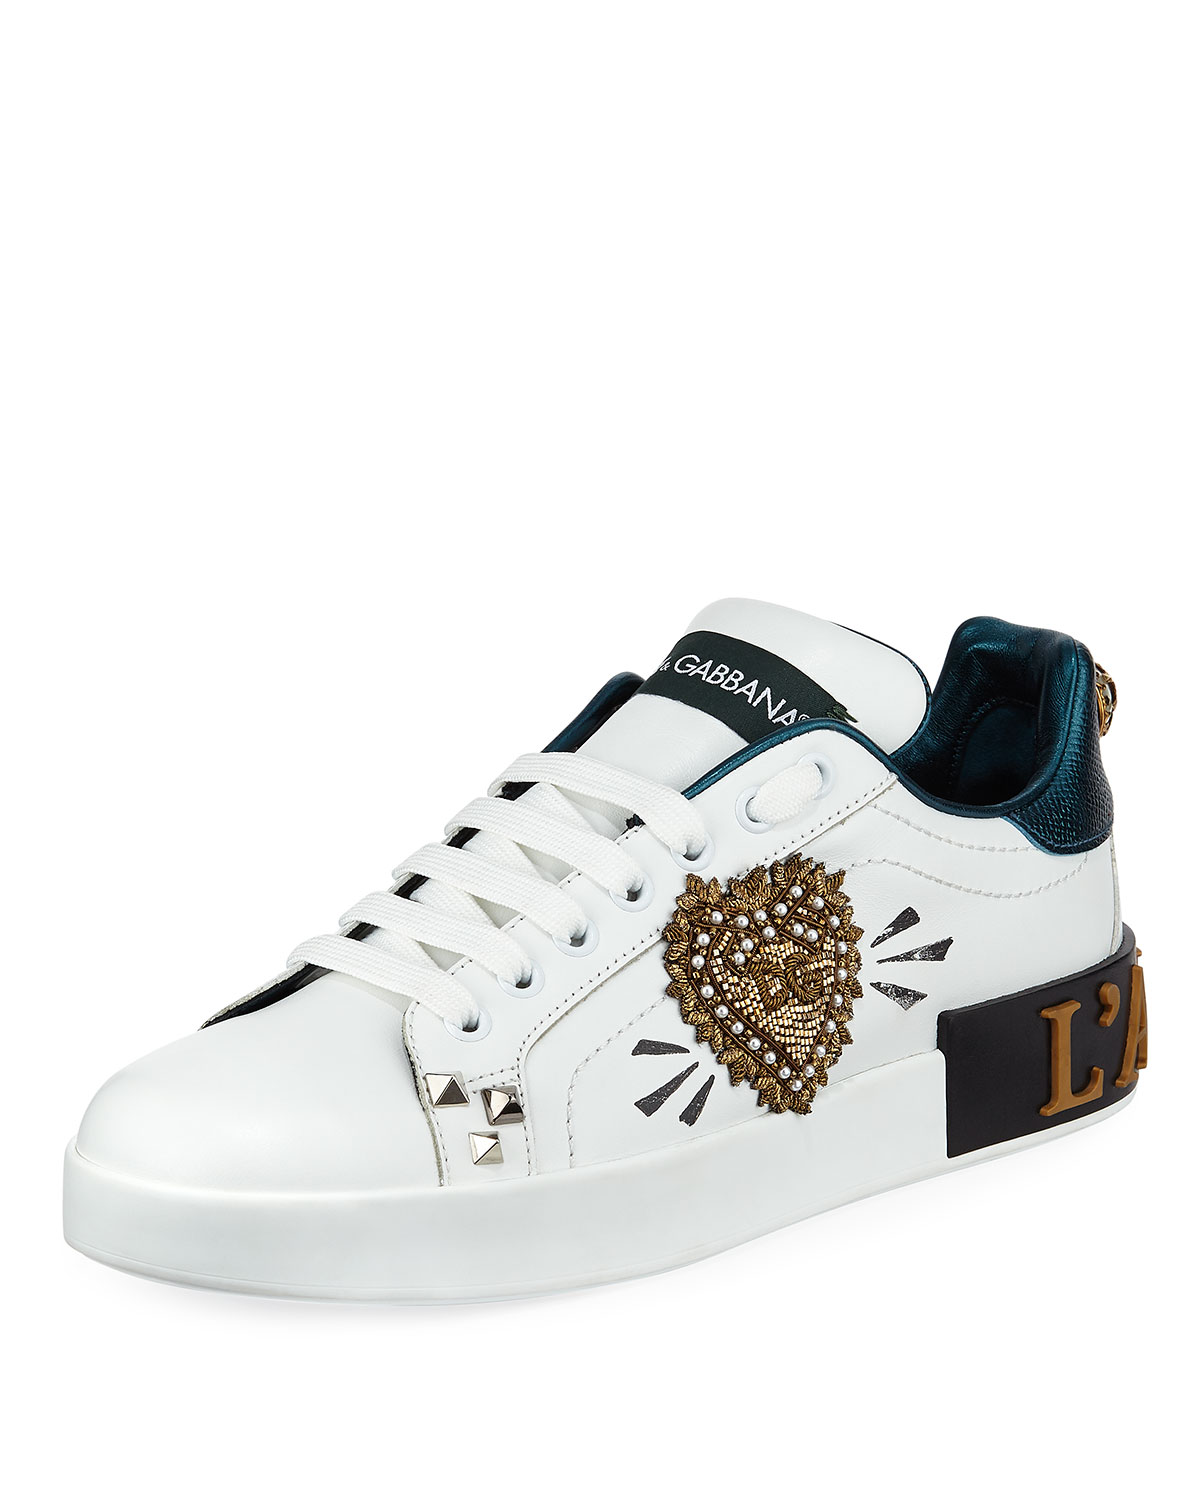 Dolce And Gabbana White And Green Dg Heart Portofino Sneakers